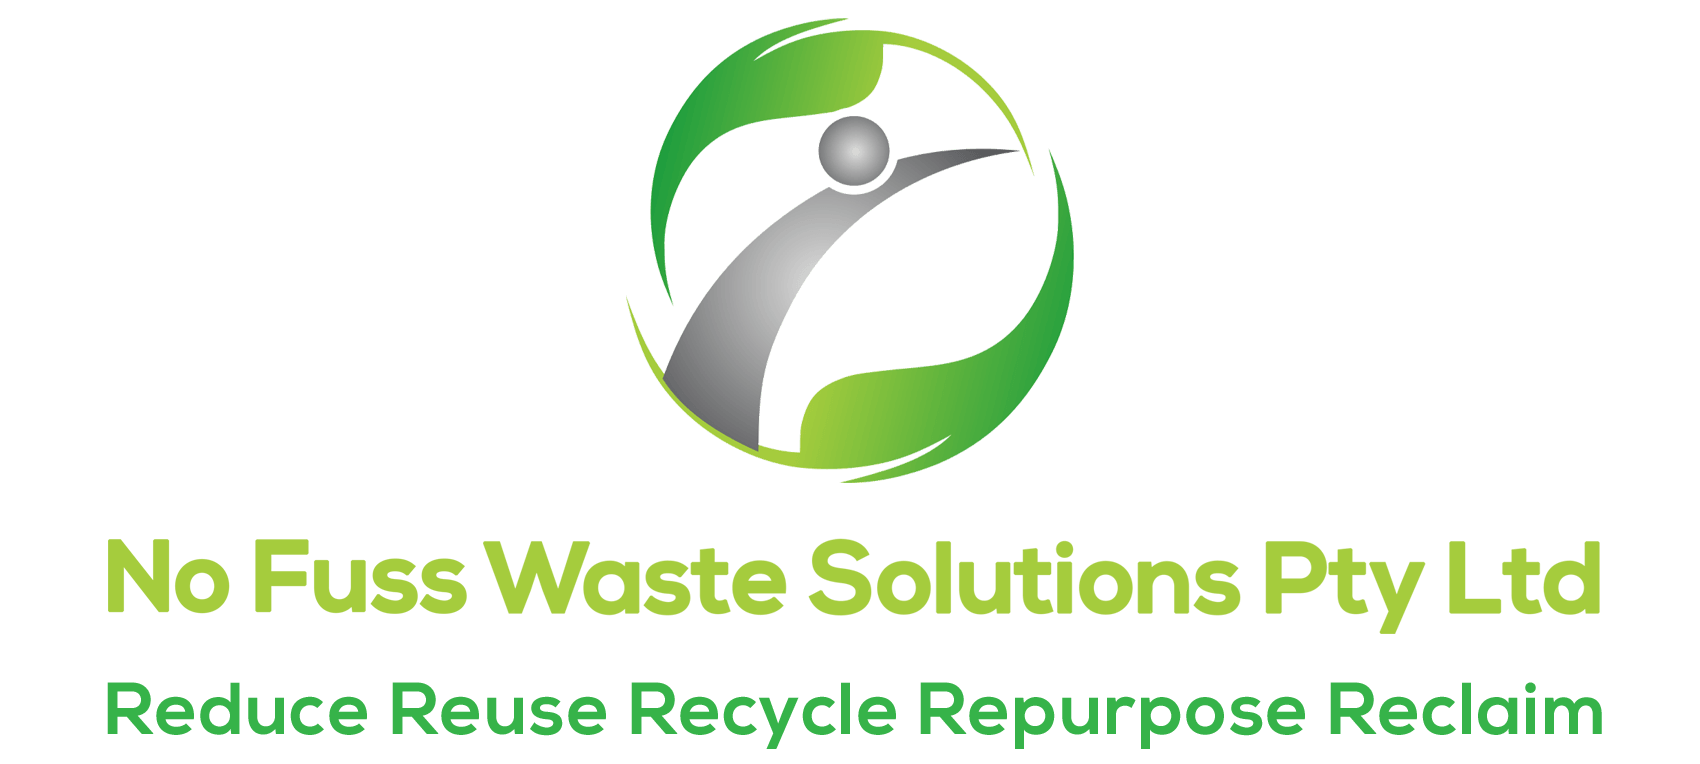 No Fuss Waste Solutions